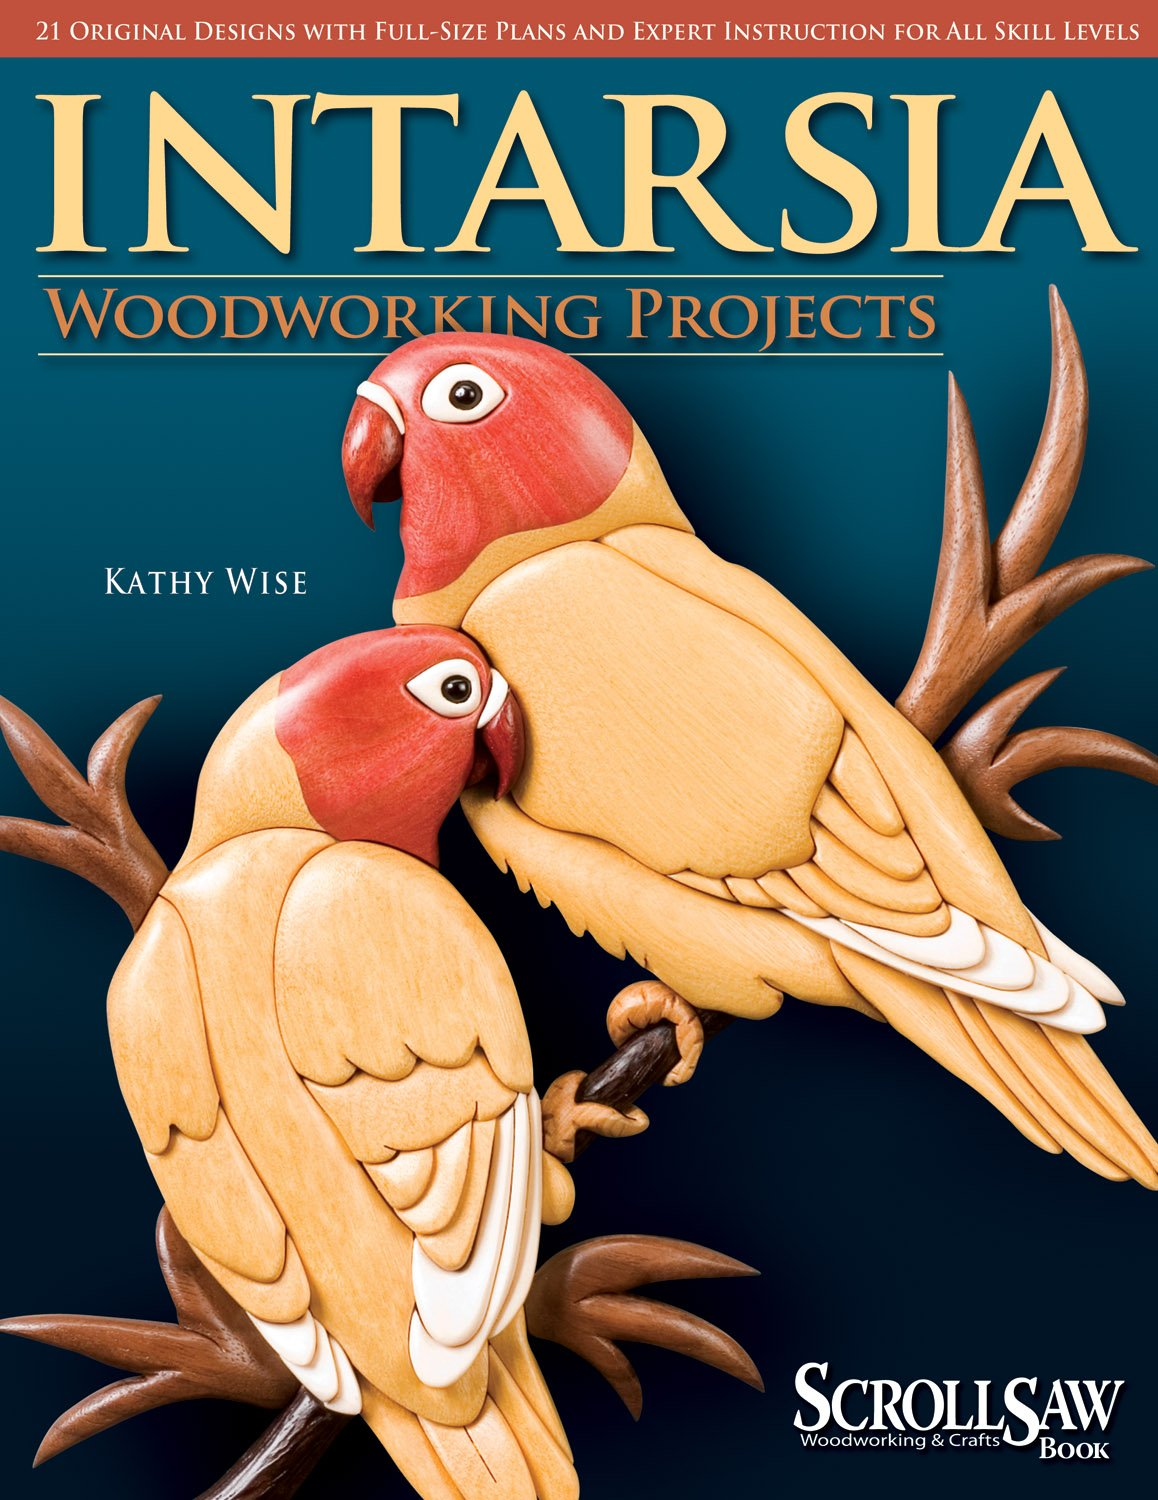 Intarsia Woodworking Projects Full Size Instruction product image